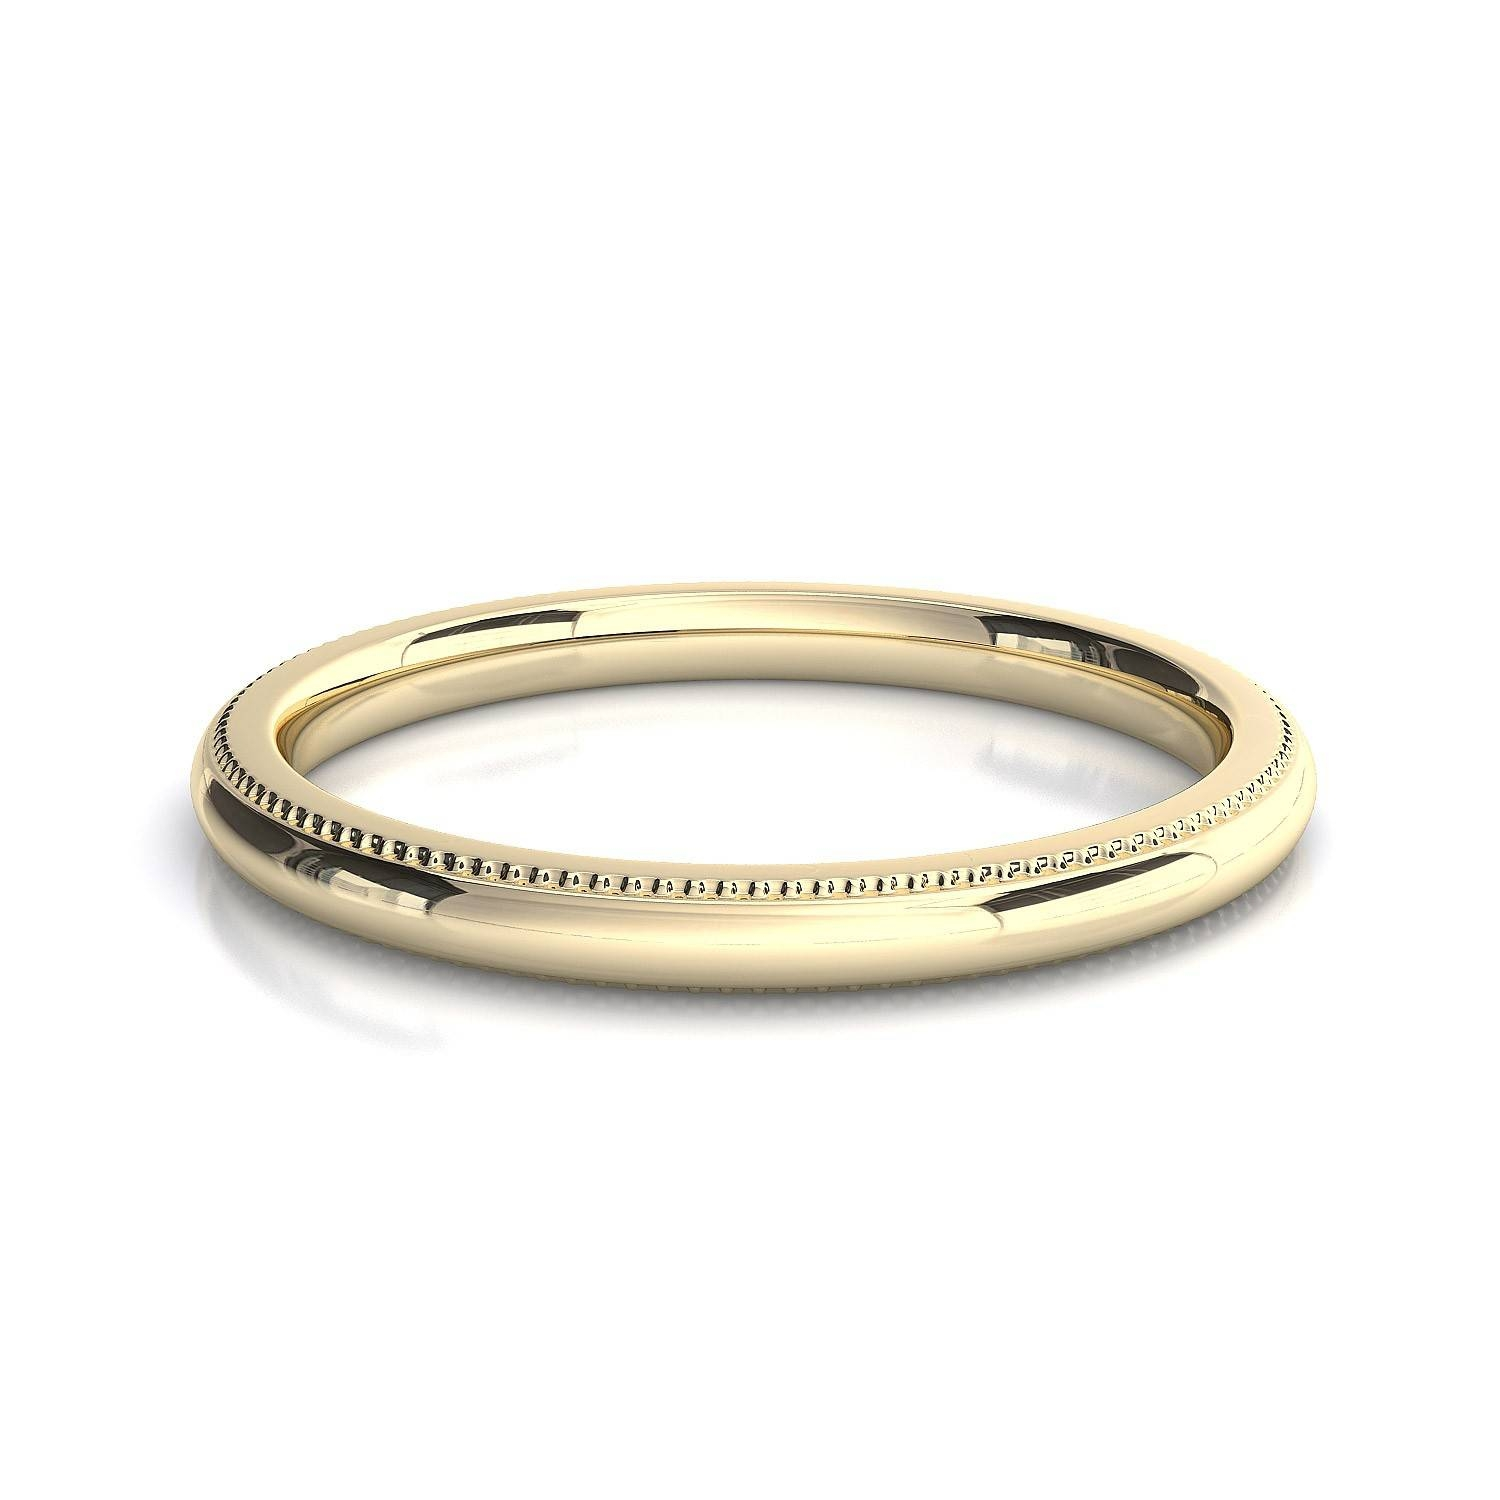 Millgrain Edge Wedding Band Toronto Custom Jewellery Intended For 2017 Plain Wedding Bands For Women (View 5 of 15)